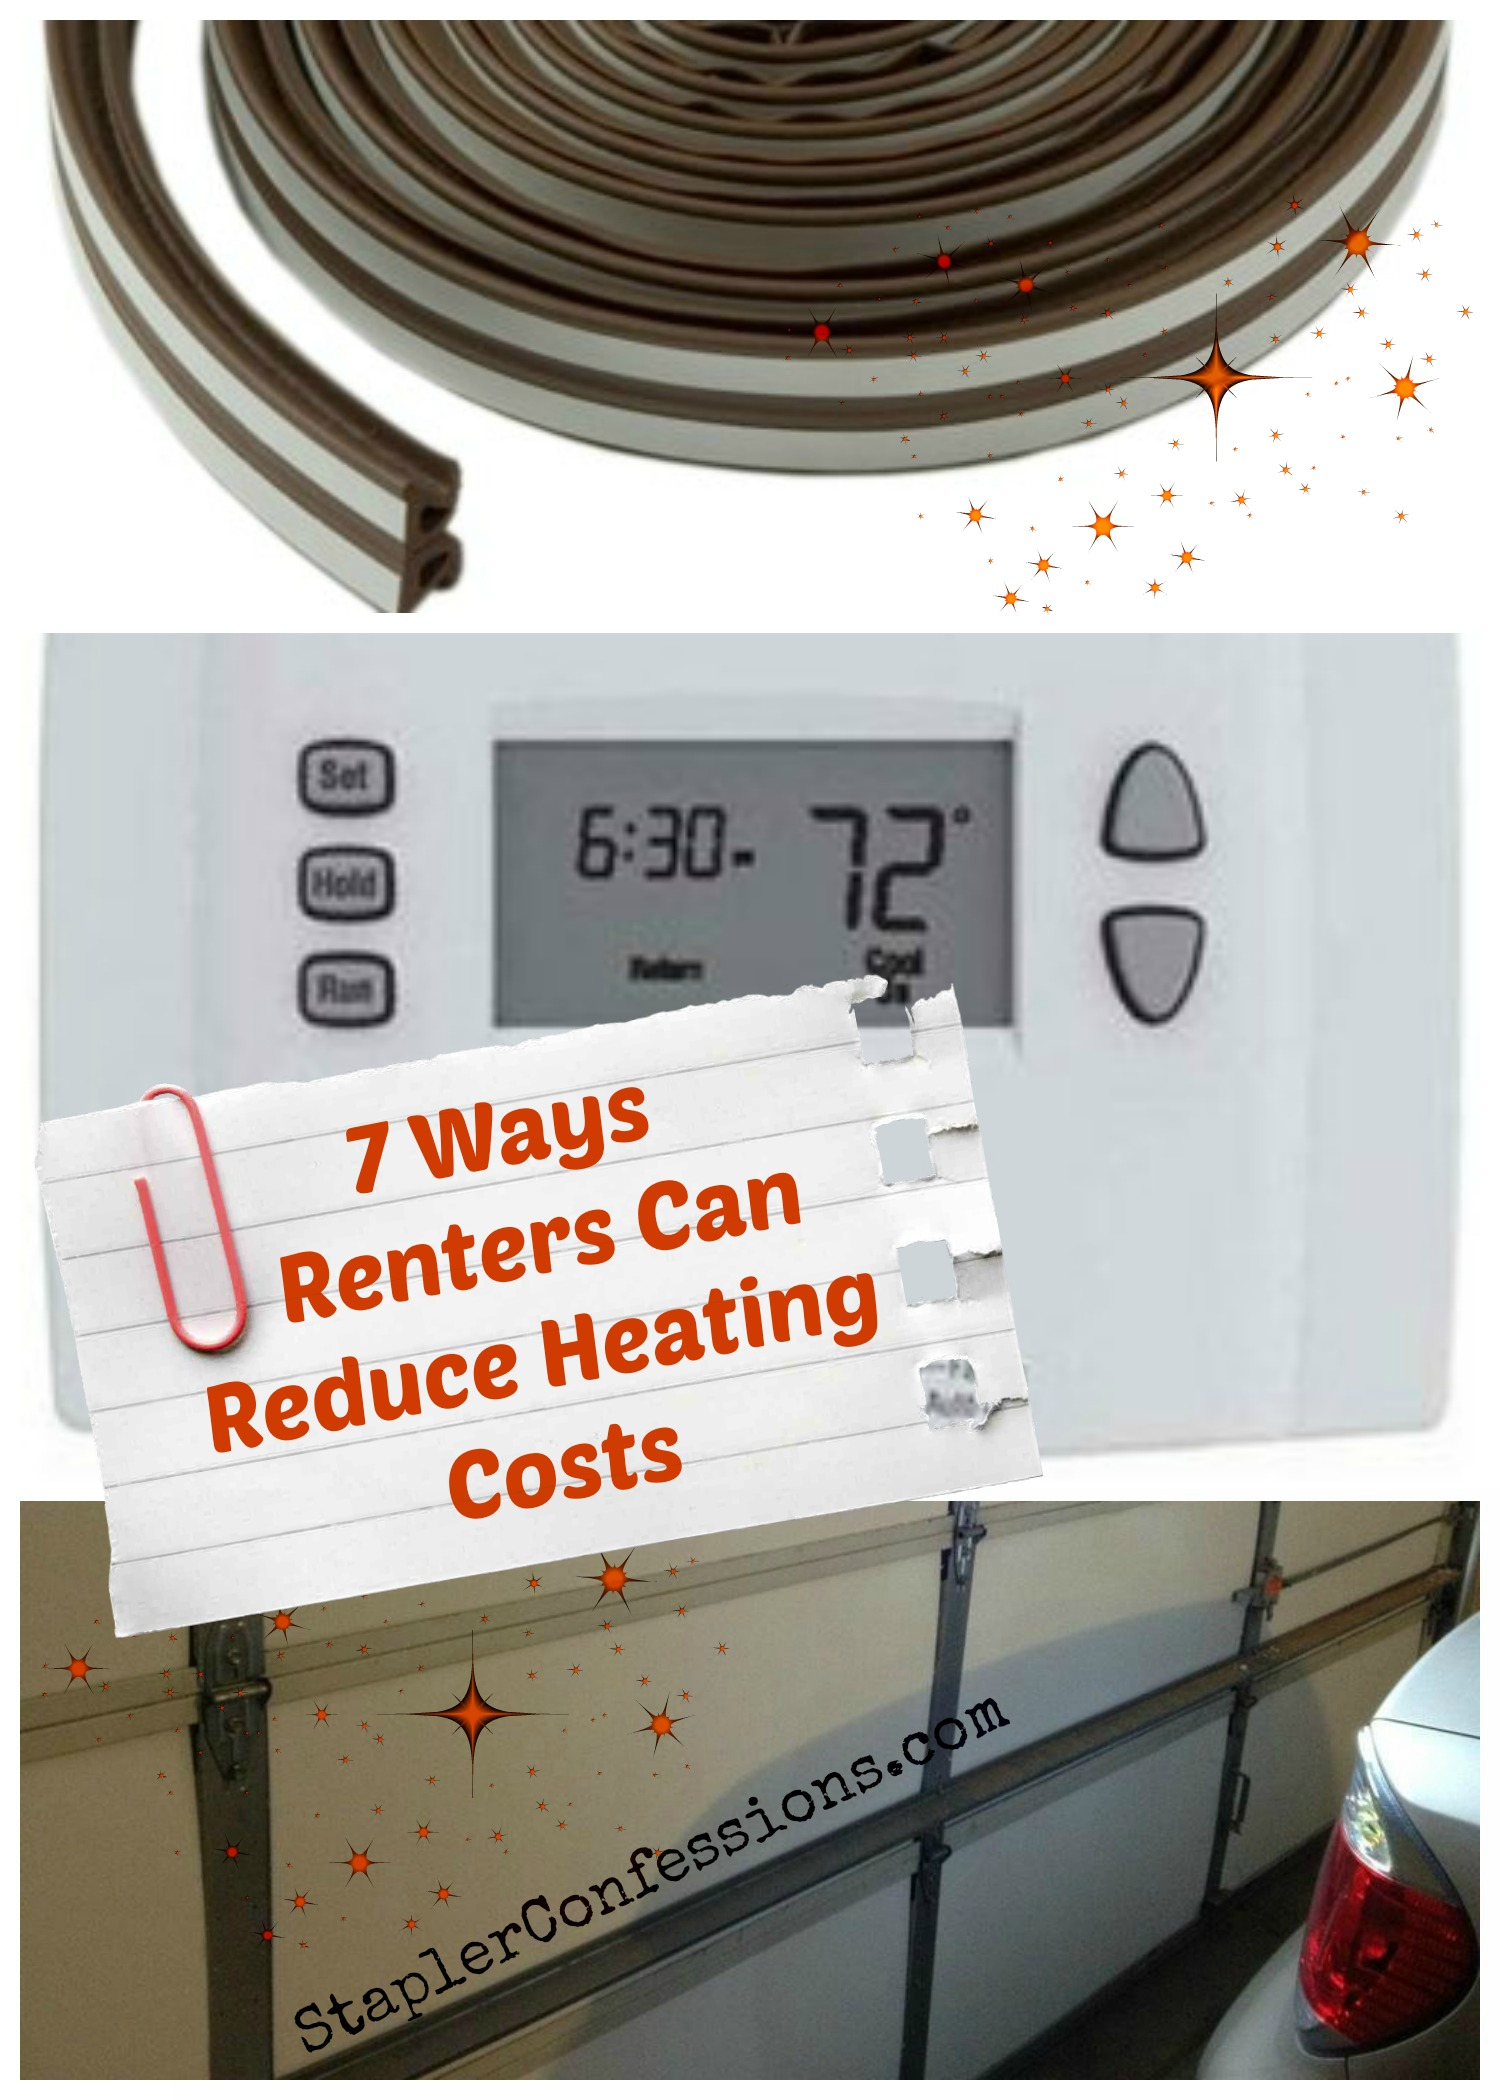 7 Ways Renters Can Reduce Heating Costs, at www.staplerconfessions.com